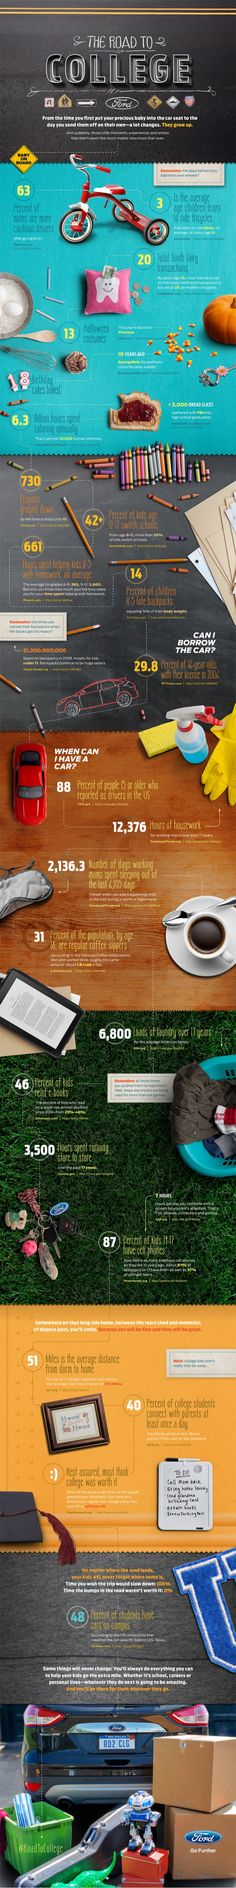 The Road to College #infographic #College #Education